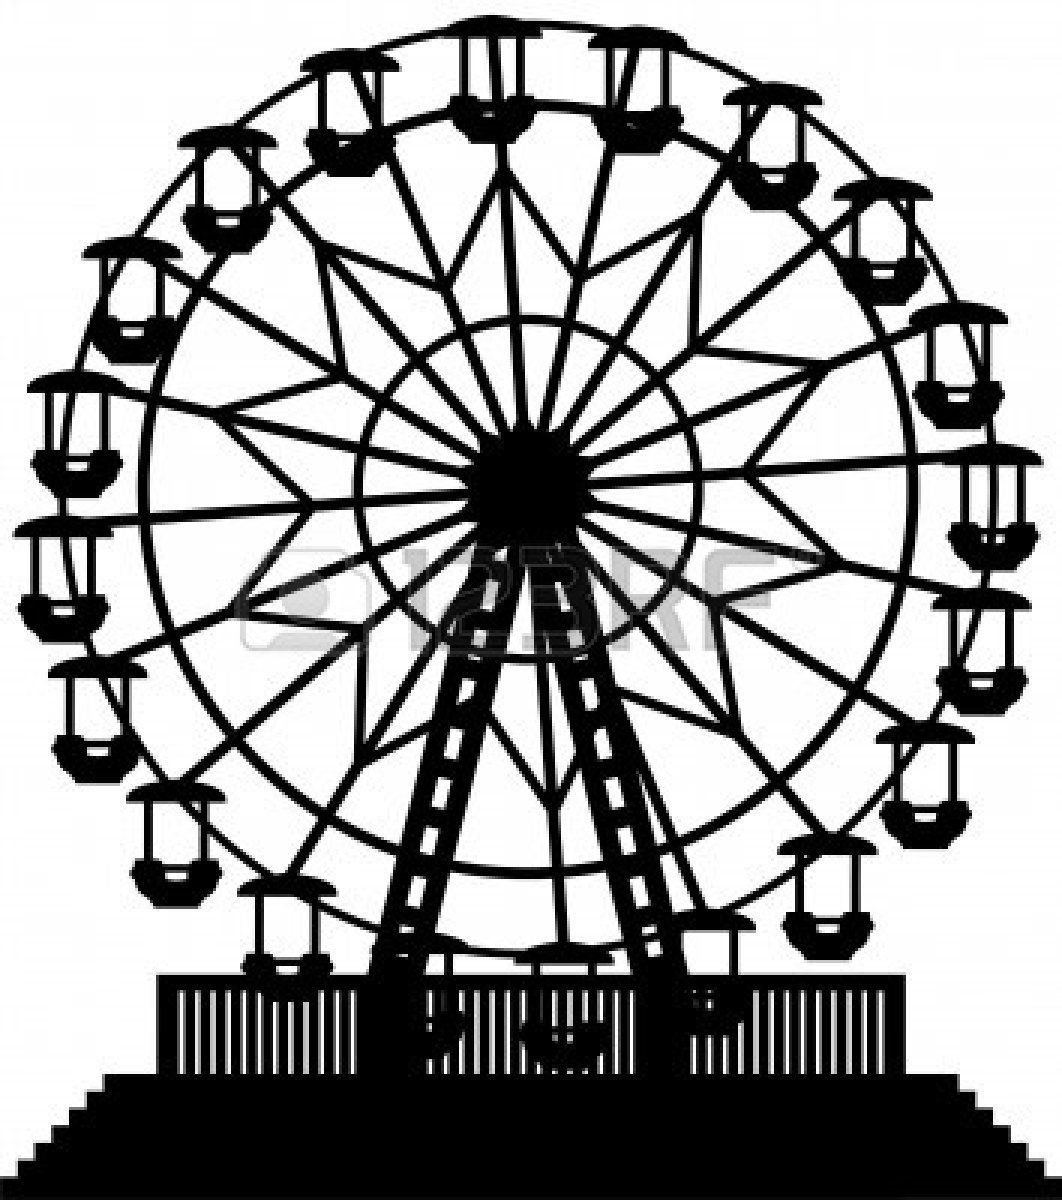 Wheels turning clipart black and white picture free download Ferris Wheel Clipart Black And White | Great free clipart ... picture free download